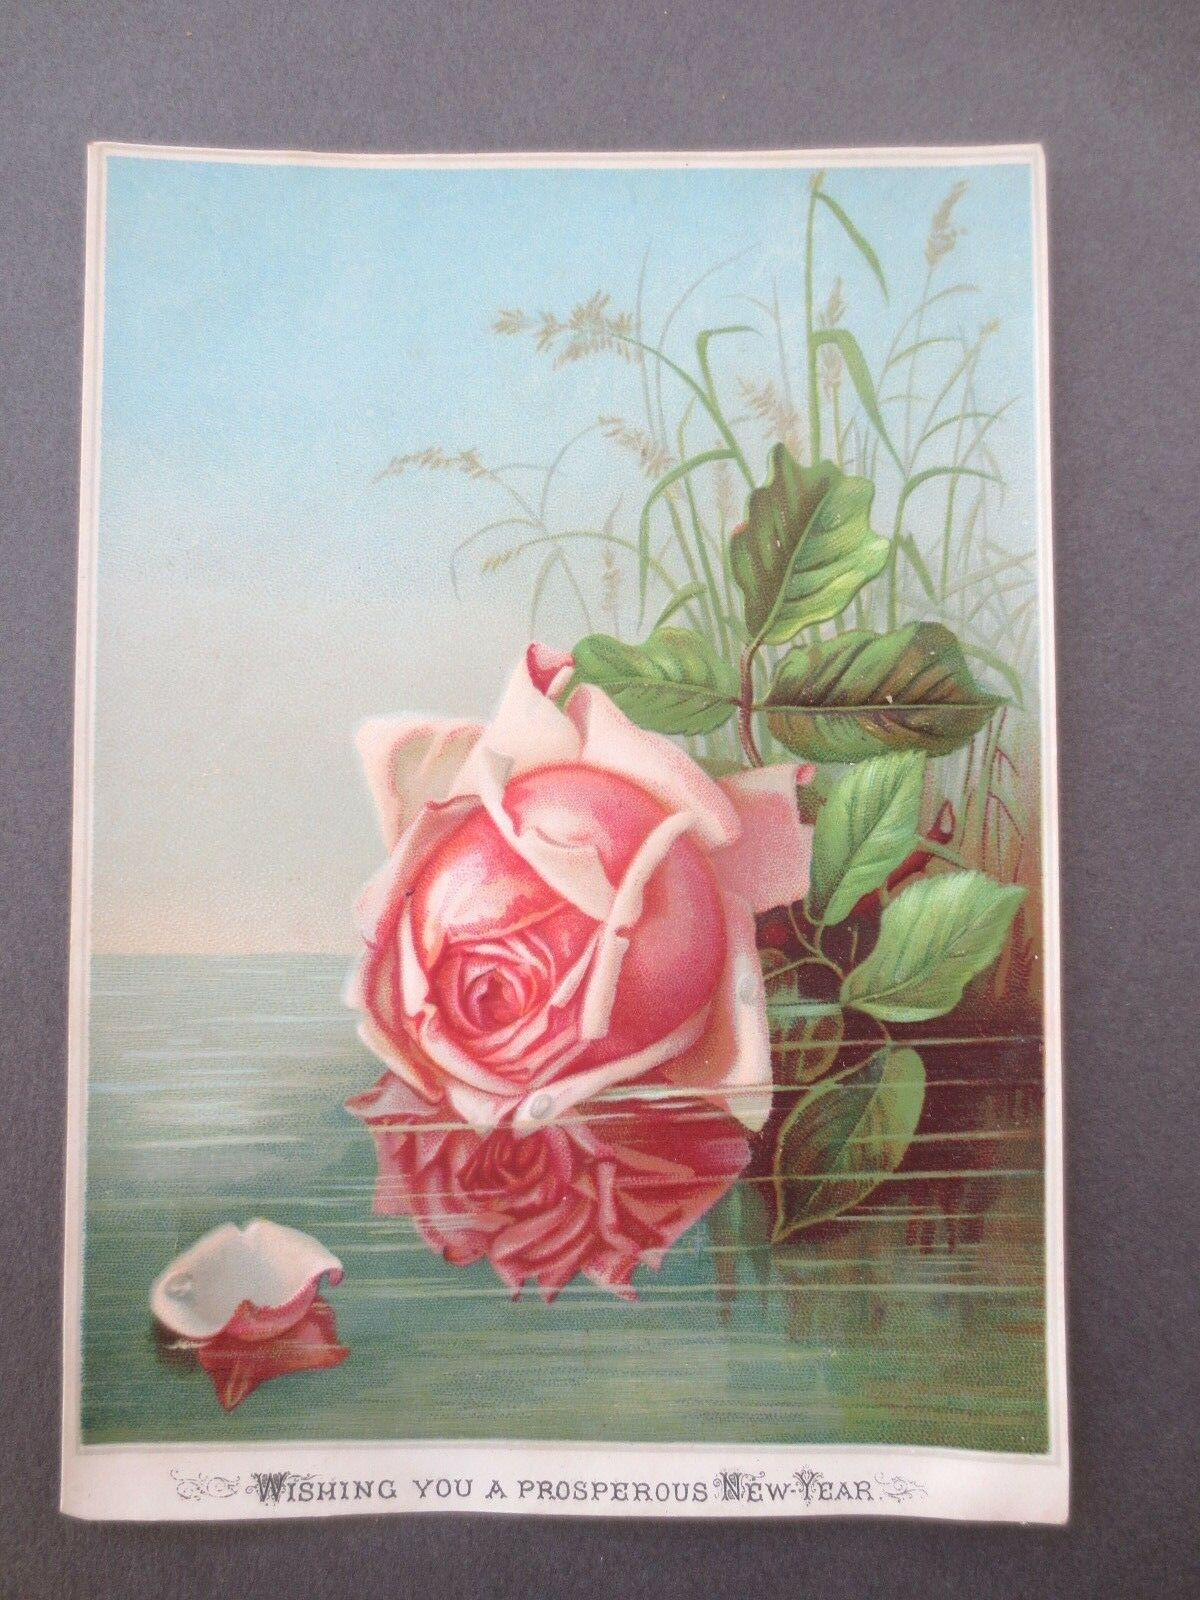 antique new year card pink rose embossed on water ferns 1881 victorian chromo 1 of 2only 1 available